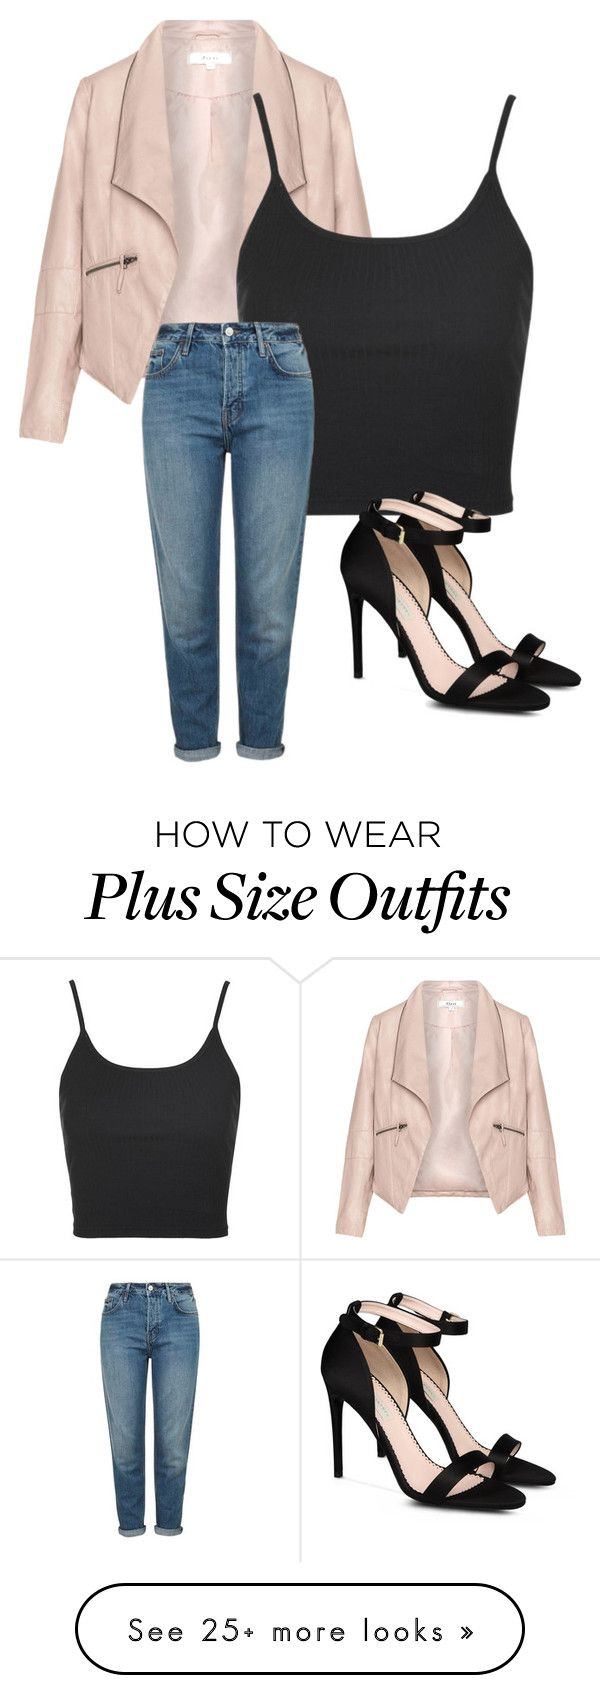 """#729"" by fashionicon2004 on Polyvore featuring Zizzi, Topshop and STELLA McCARTNEY"